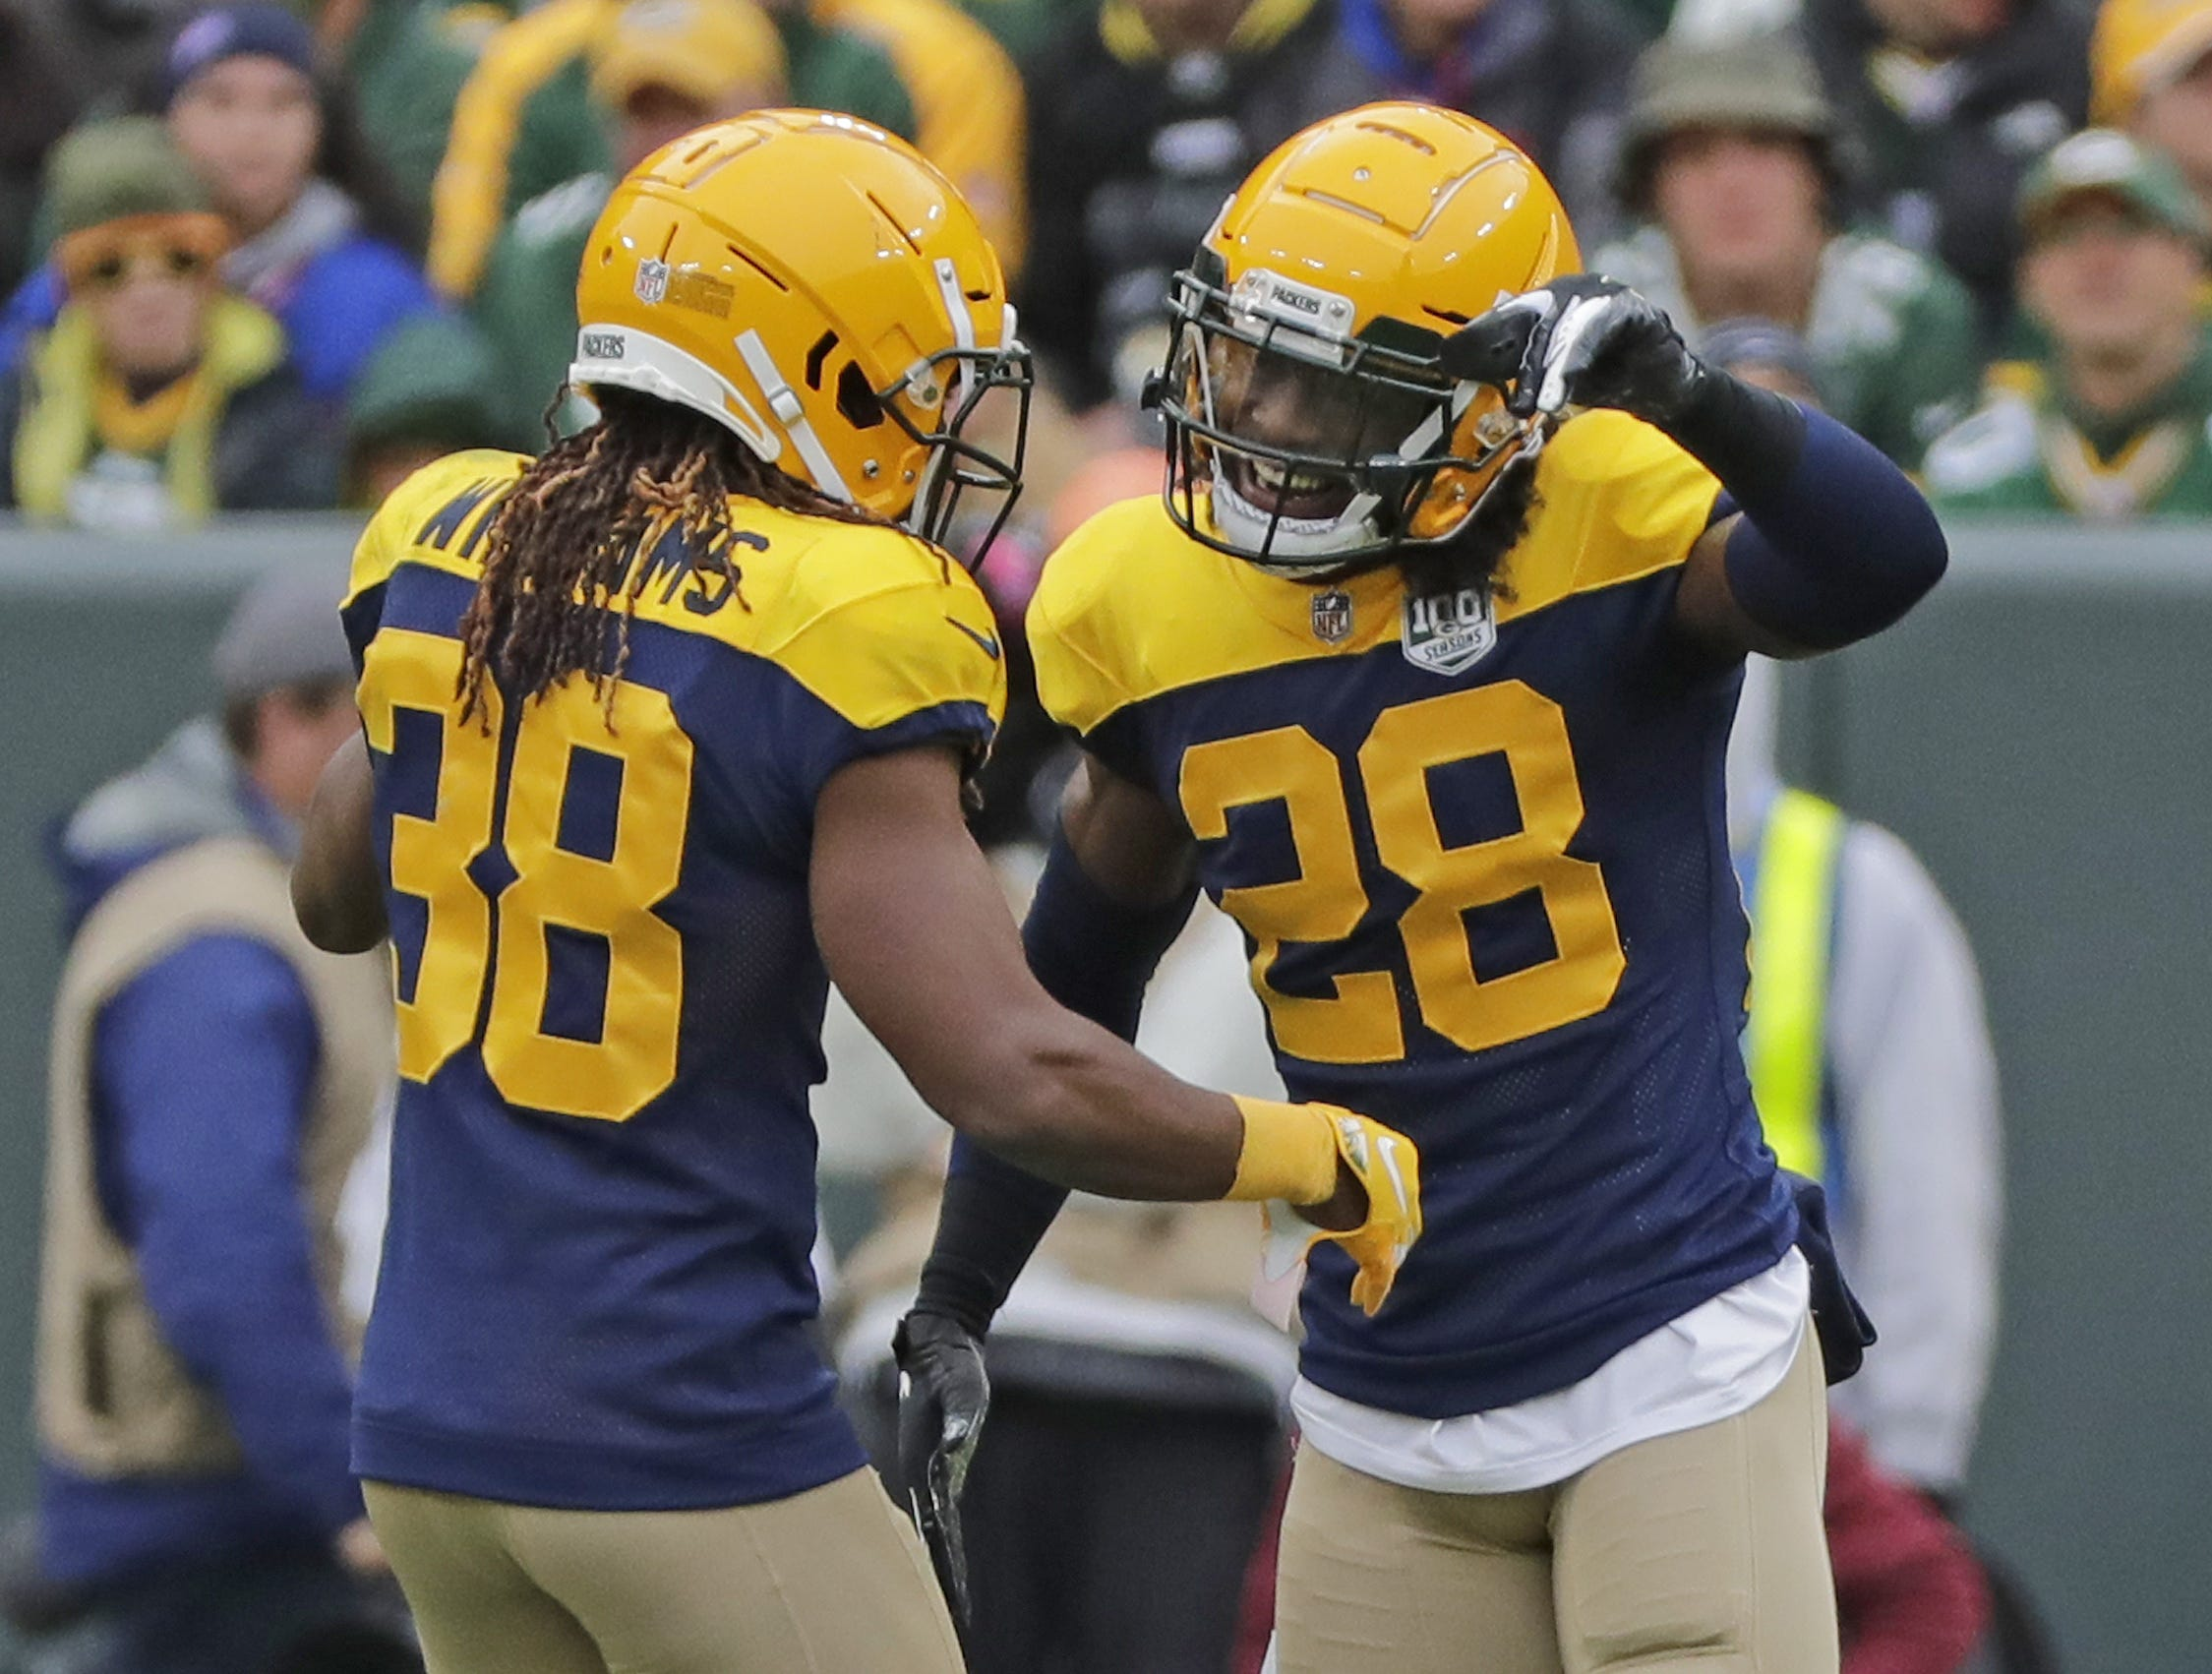 Green Bay Packers defensive back Tramon Williams (38) and cornerback Tony Brown (28) react during the second half against the Buffalo Bills at Lambeau Field on Sunday, September 30, 2018 in Green Bay, Wis. Adam Wesley/USA TODAY NETWORK-Wisconsin